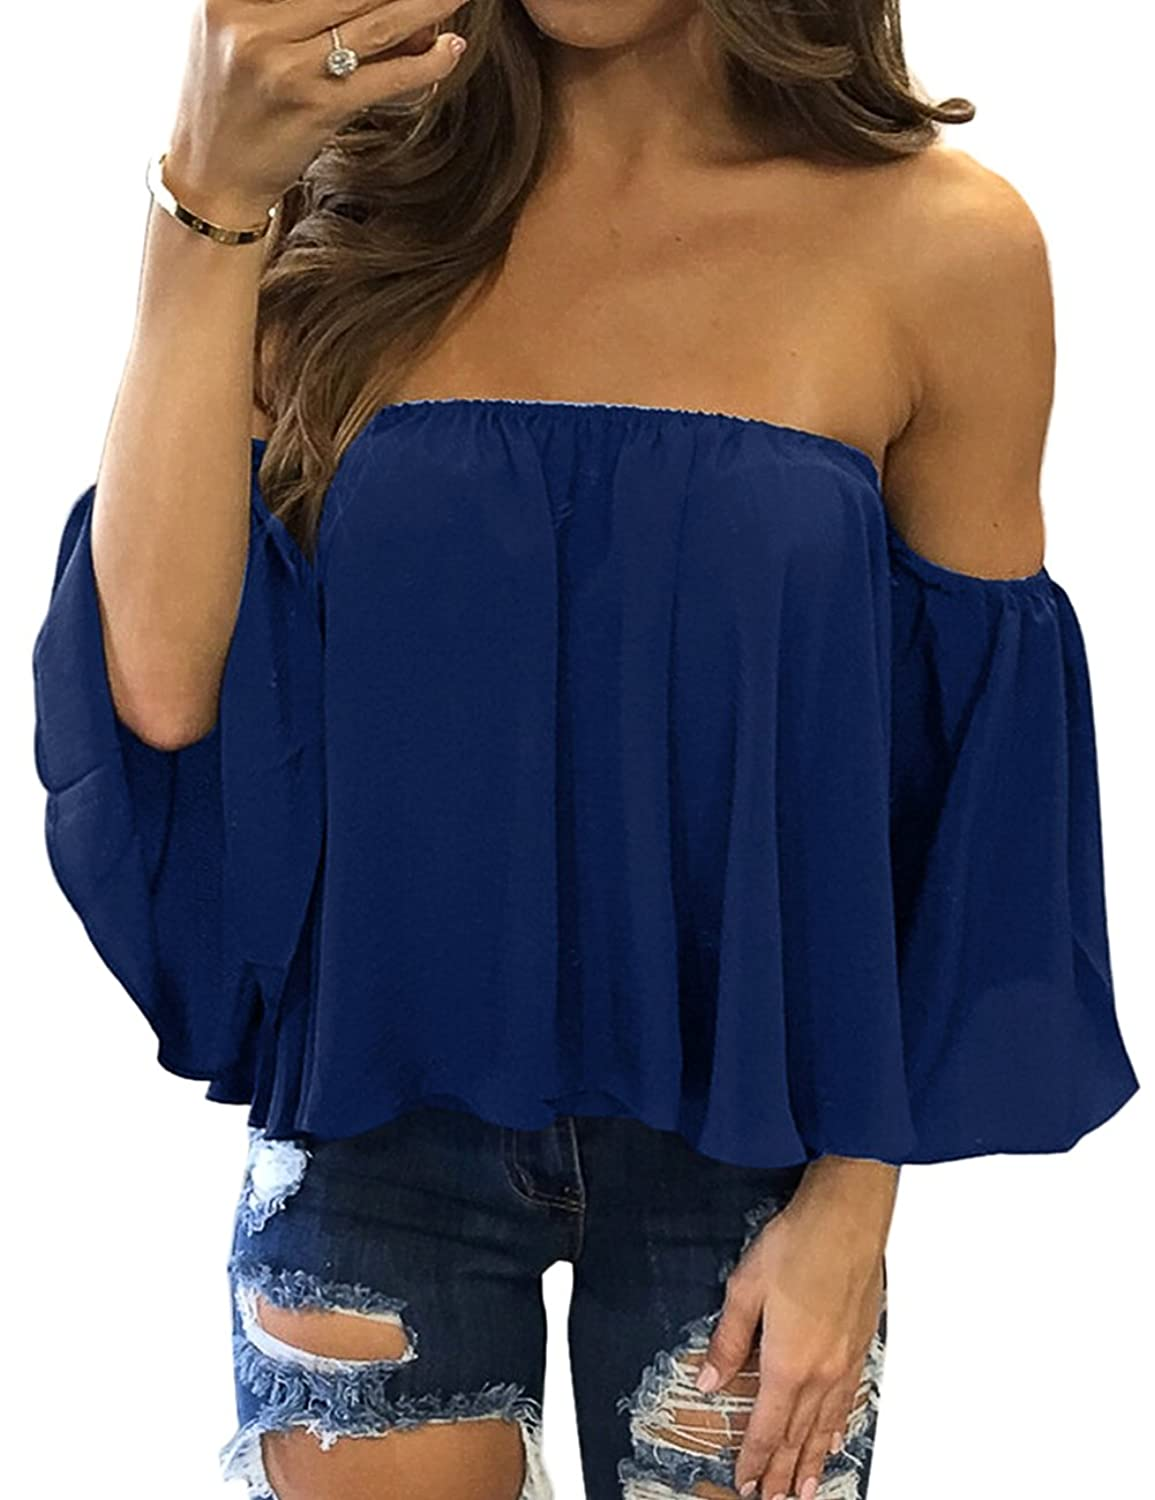 28f44e5e256c Chiffon Summer Off The Shoulder Tops Sexy Off Shoulder Chiffon Blouse fits  for women, ladies, teens and juniors. Ladies off shoulder blouse is made of  ...